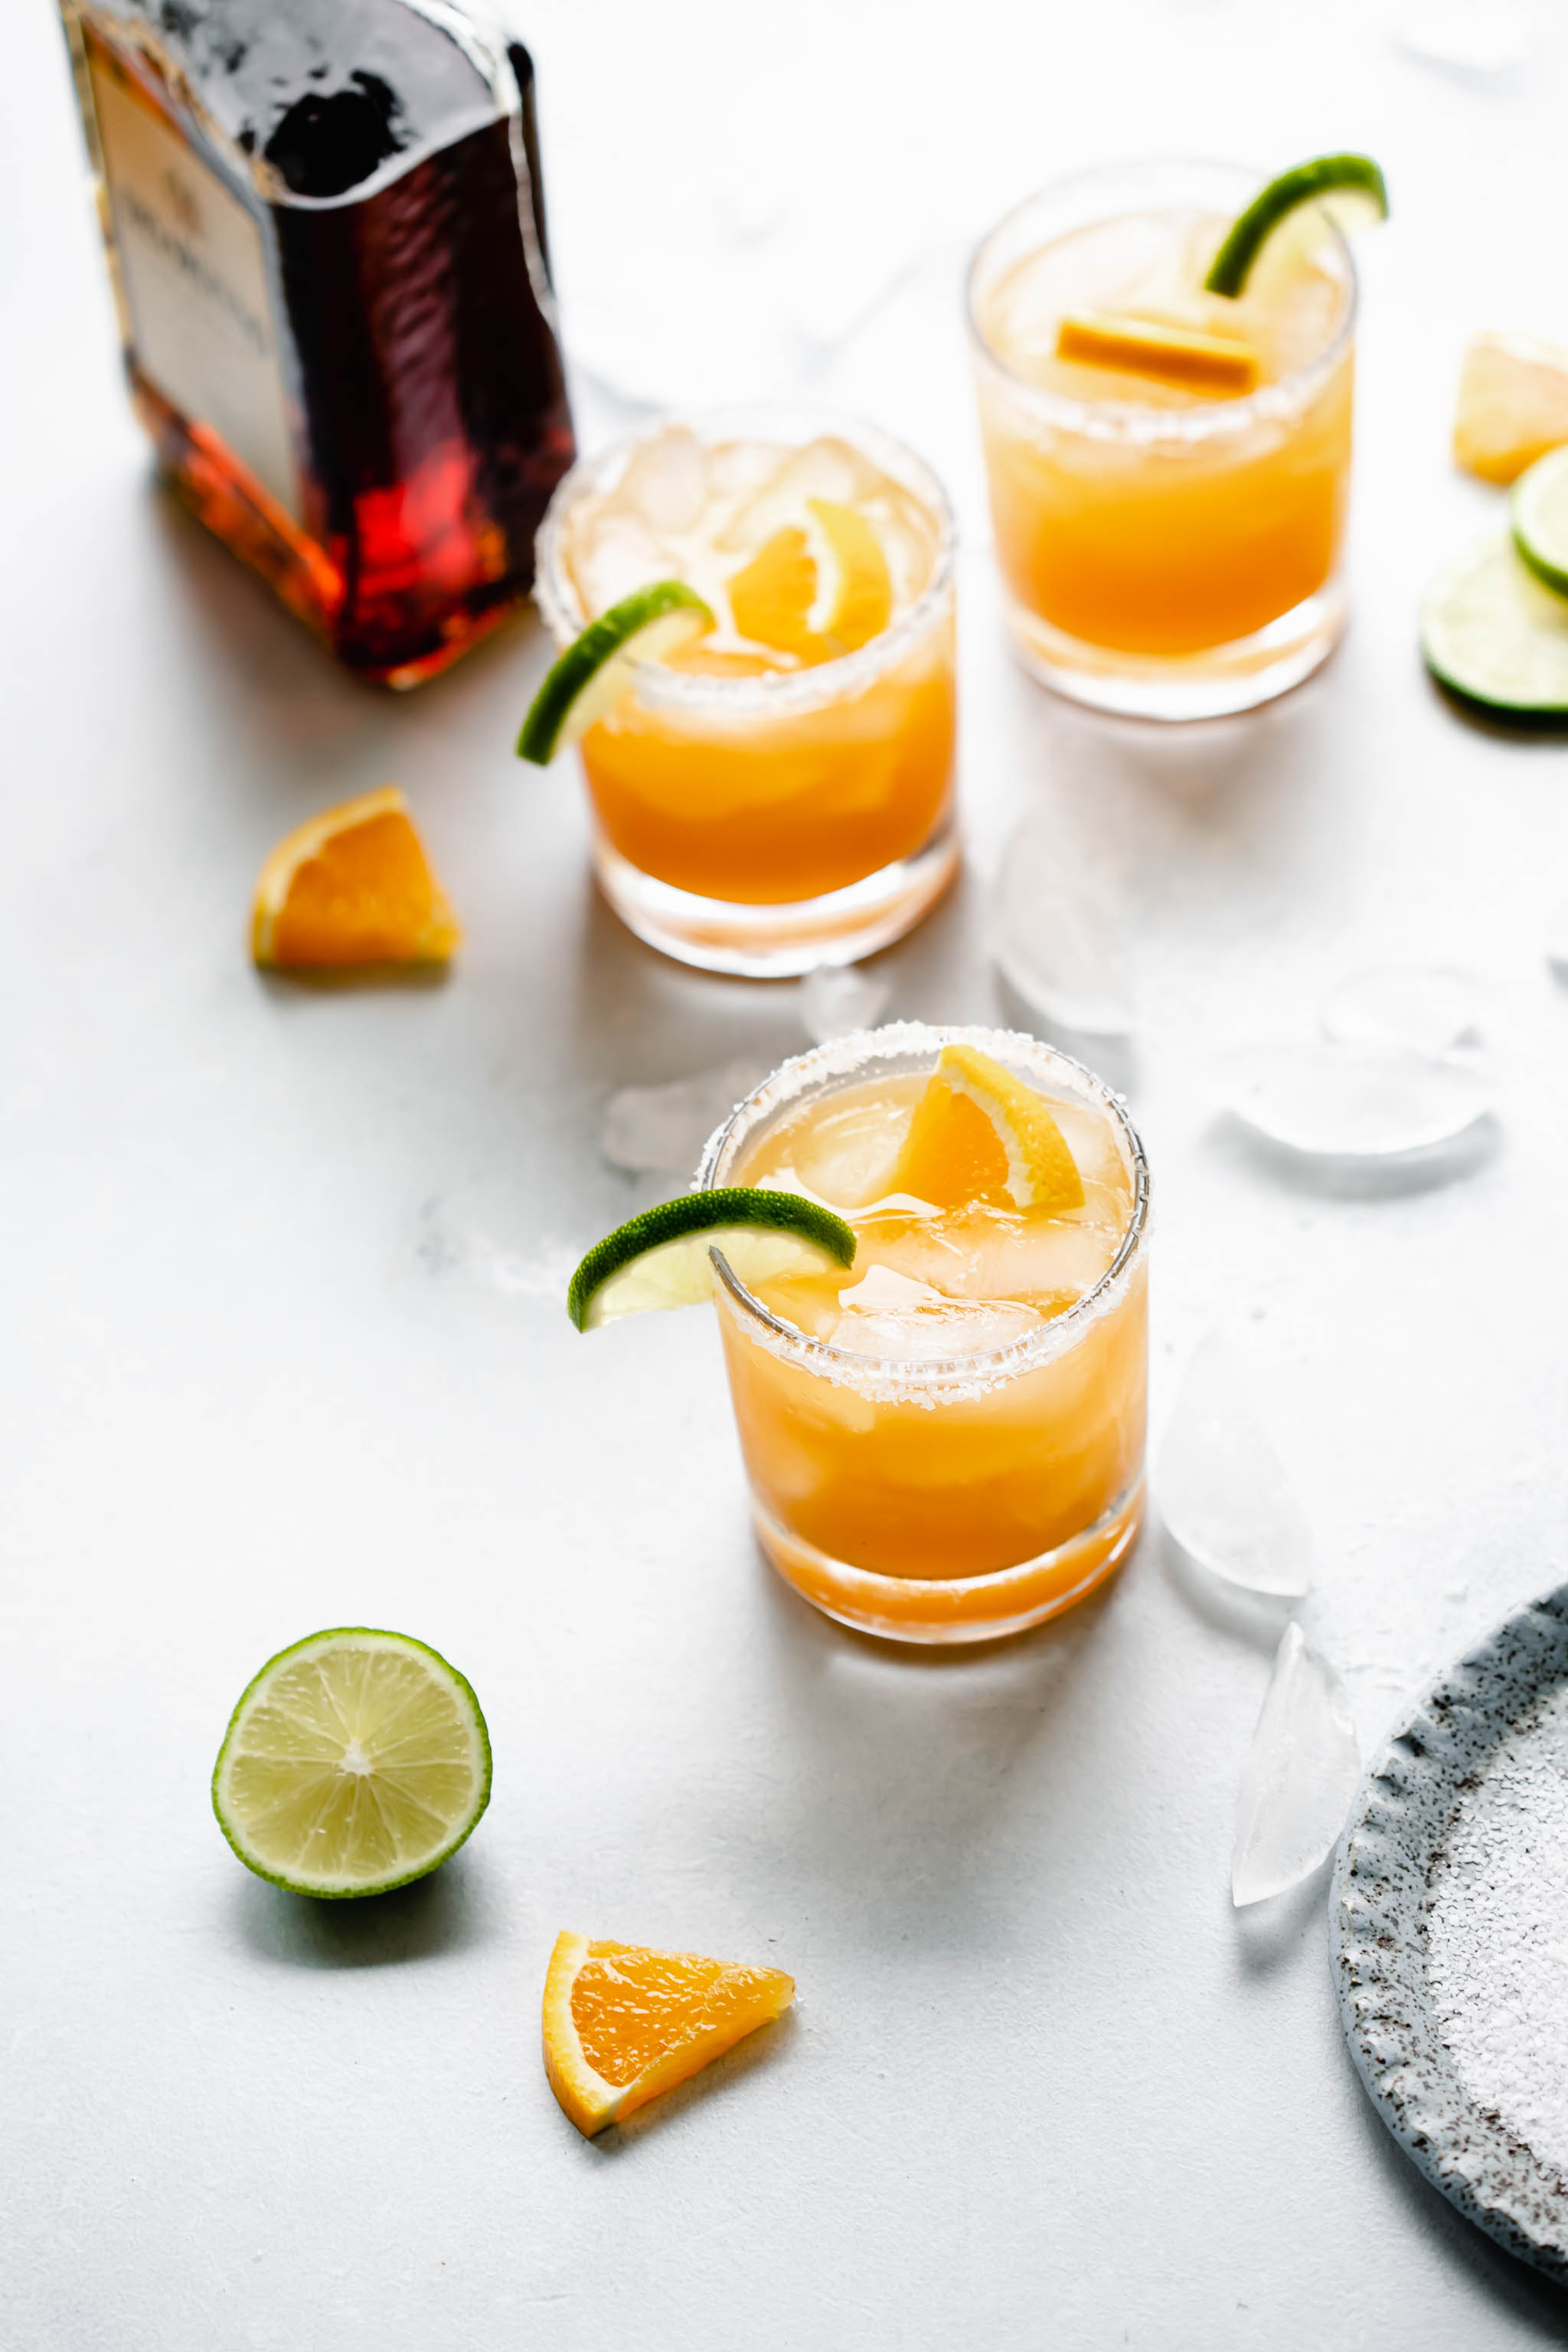 Three glasses of Italian Margarita rimmed with salt and garnished with orange and lime slices next to bottle of amaretto liqueur.